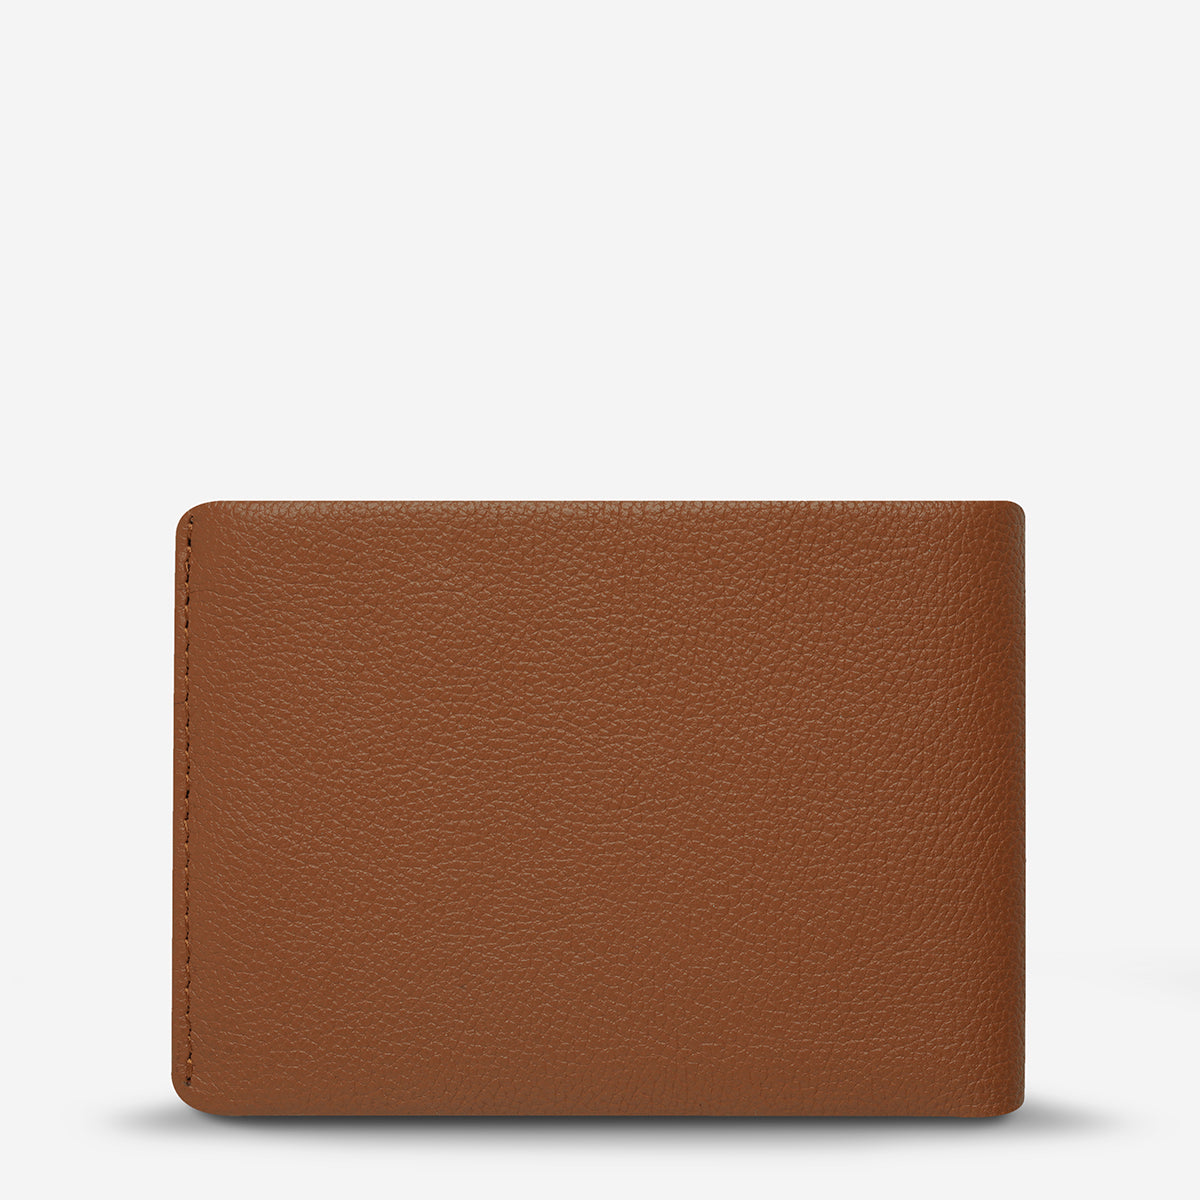 Status Anxiety Jonah Leather Bi-Fold Wallet - Camel